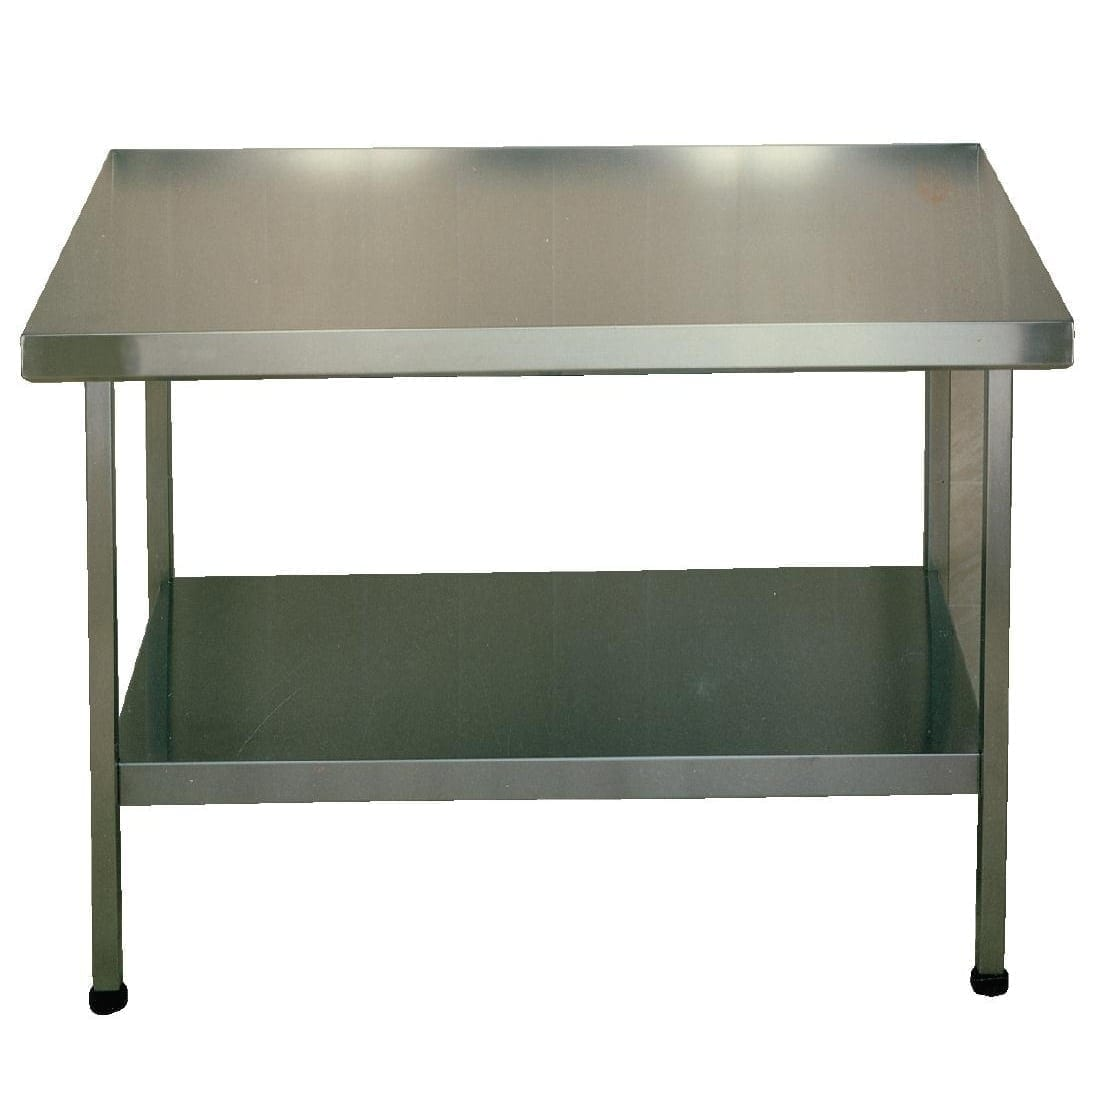 Sissons Centre Table St/St - 900x650mm (Direct)-0